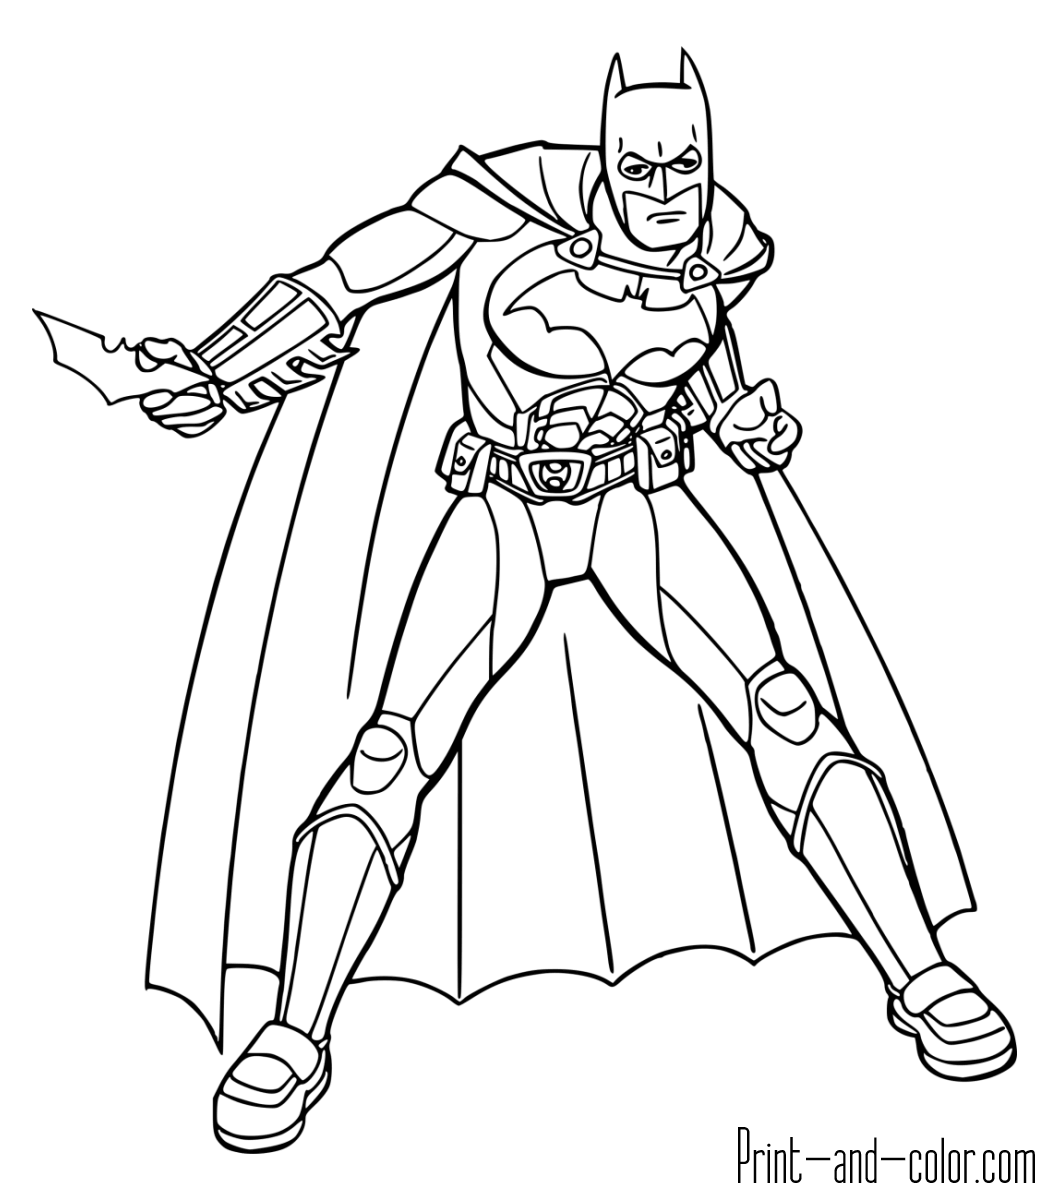 1050x1200 Lego Batman Coloring Pages View Larger Color Dark Knight To Print